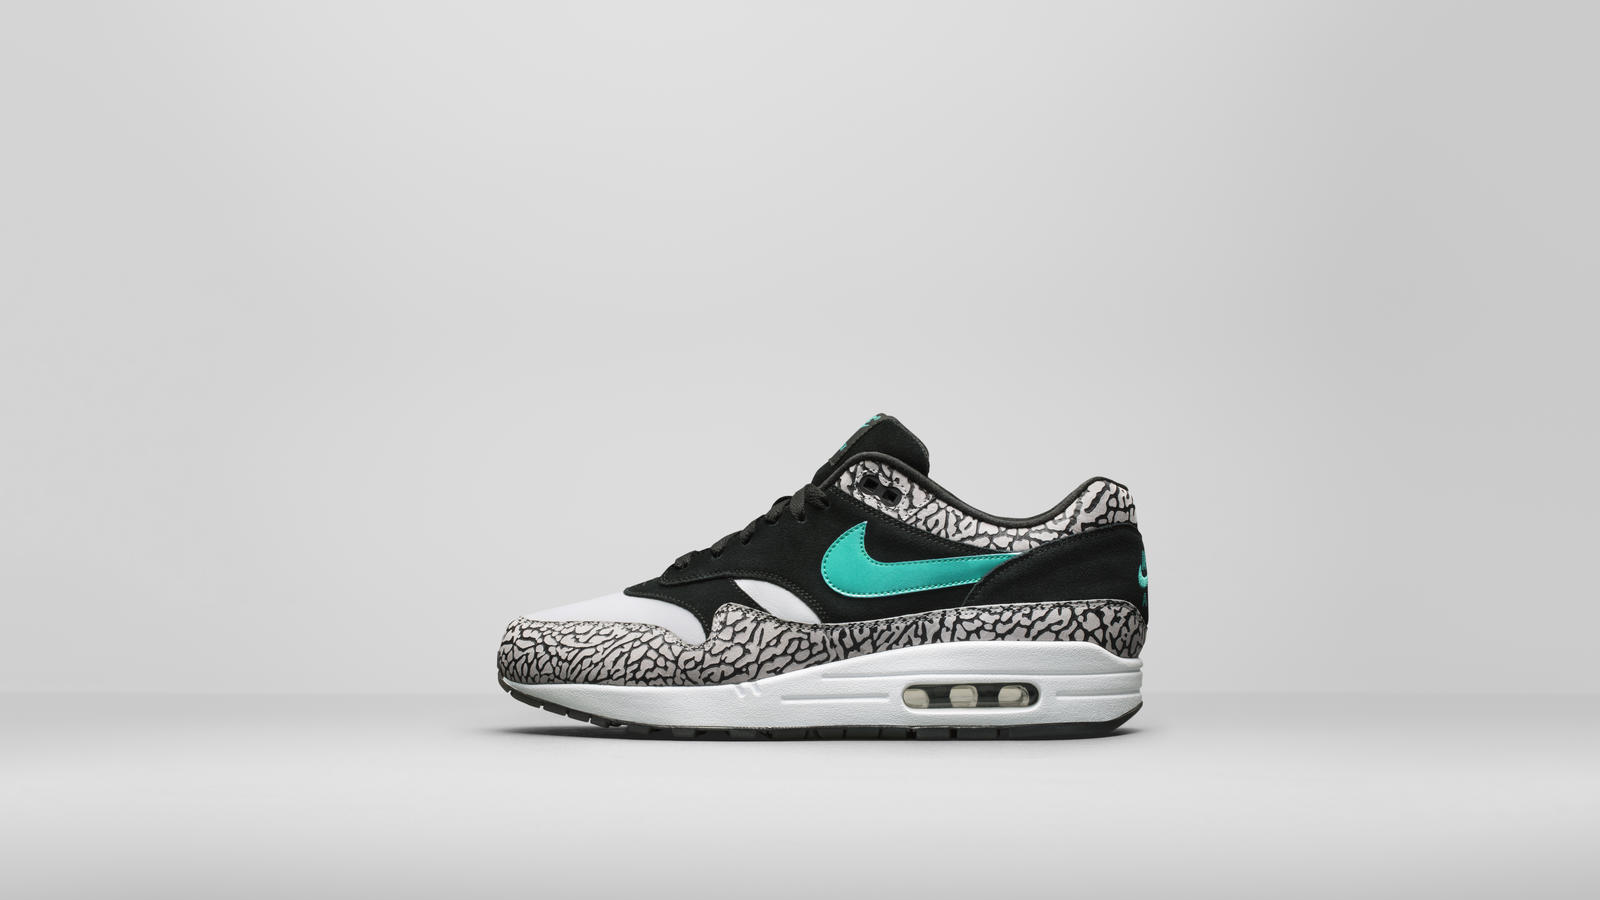 airmax_1_923093-001_a1_lateral_hd_1600